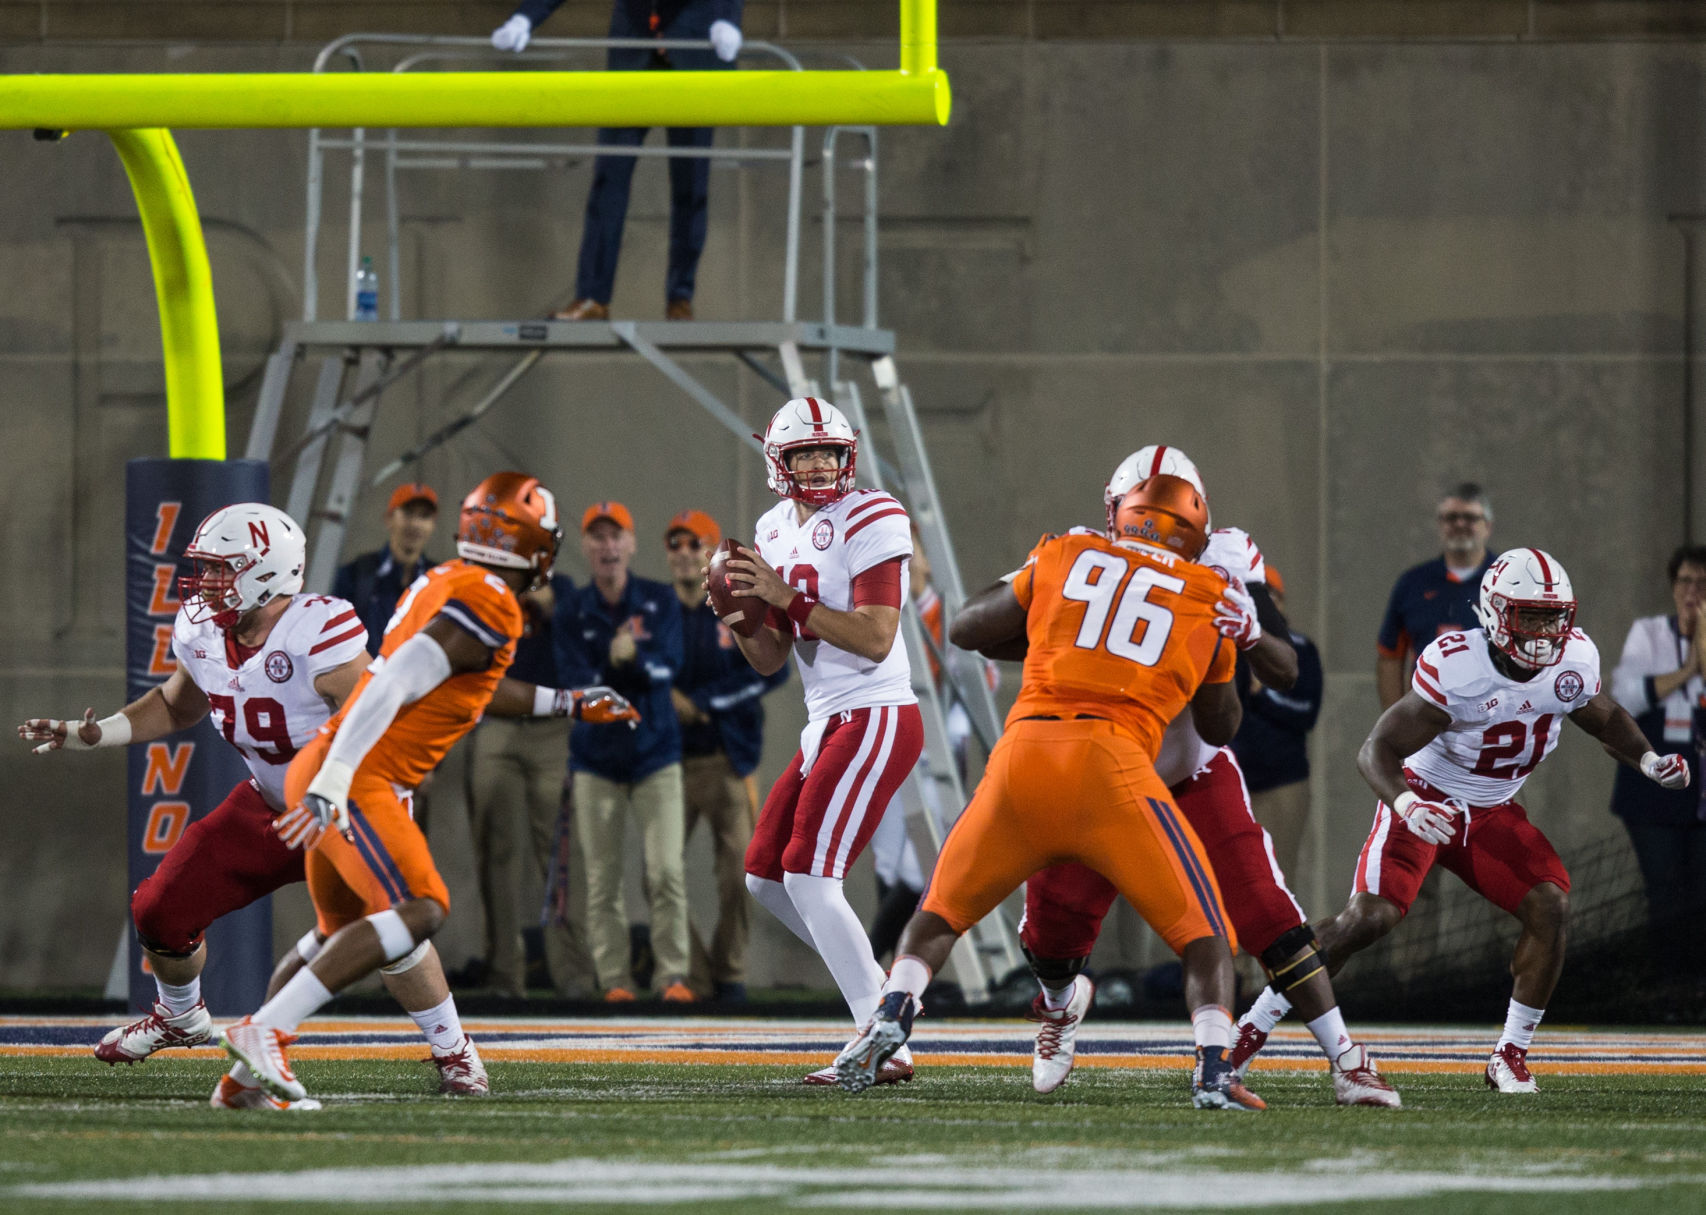 Nebraska visits IL in first B1G road test